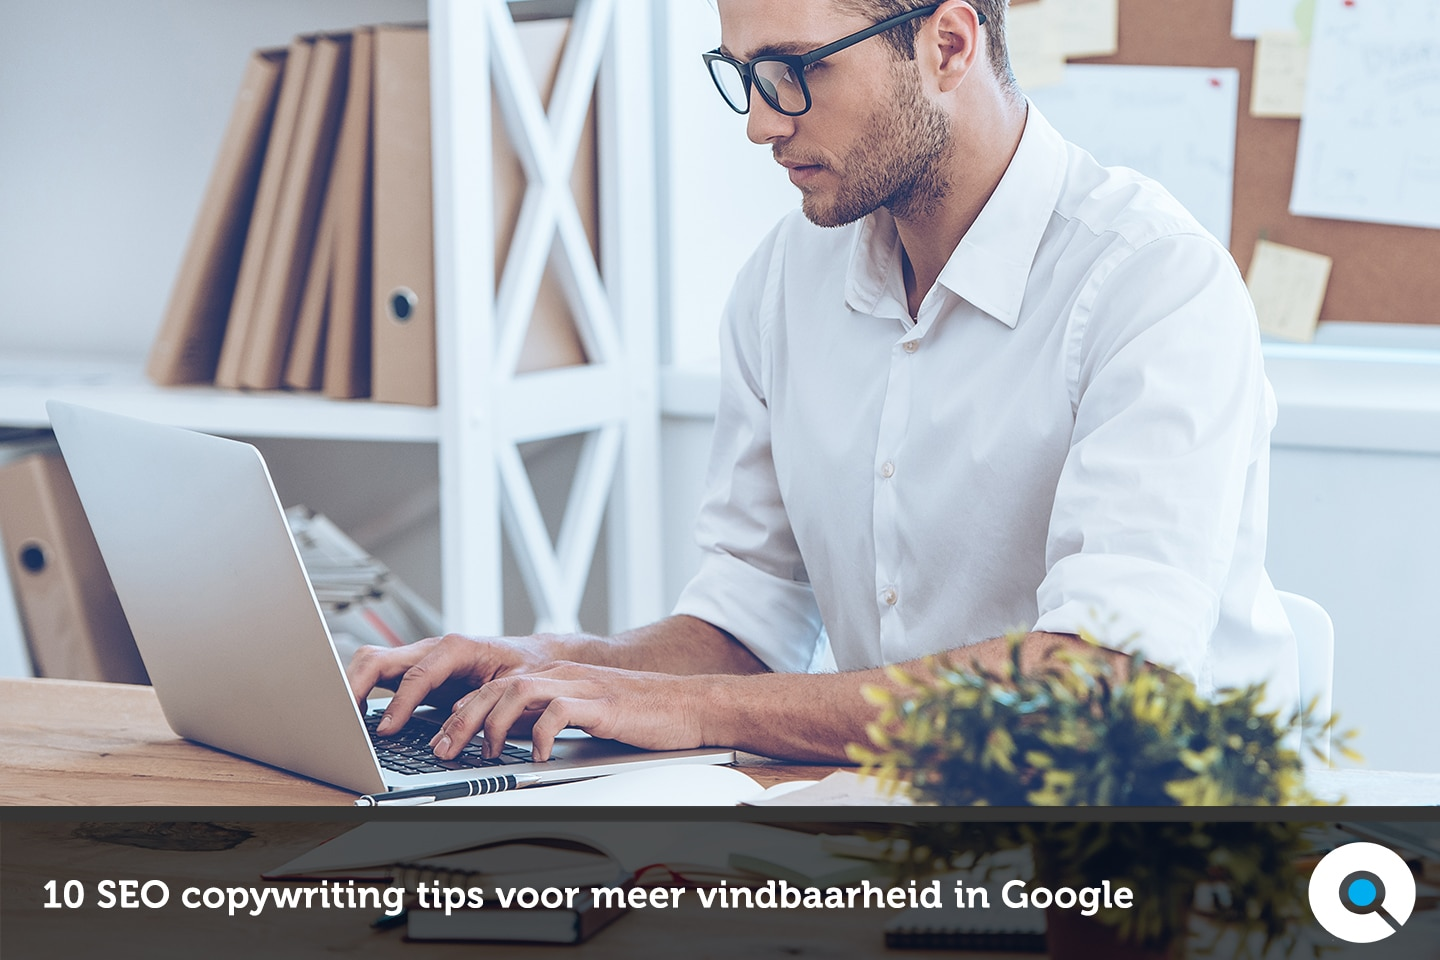 10 SEO copywriting tips voor meer vindbaarheid in Google